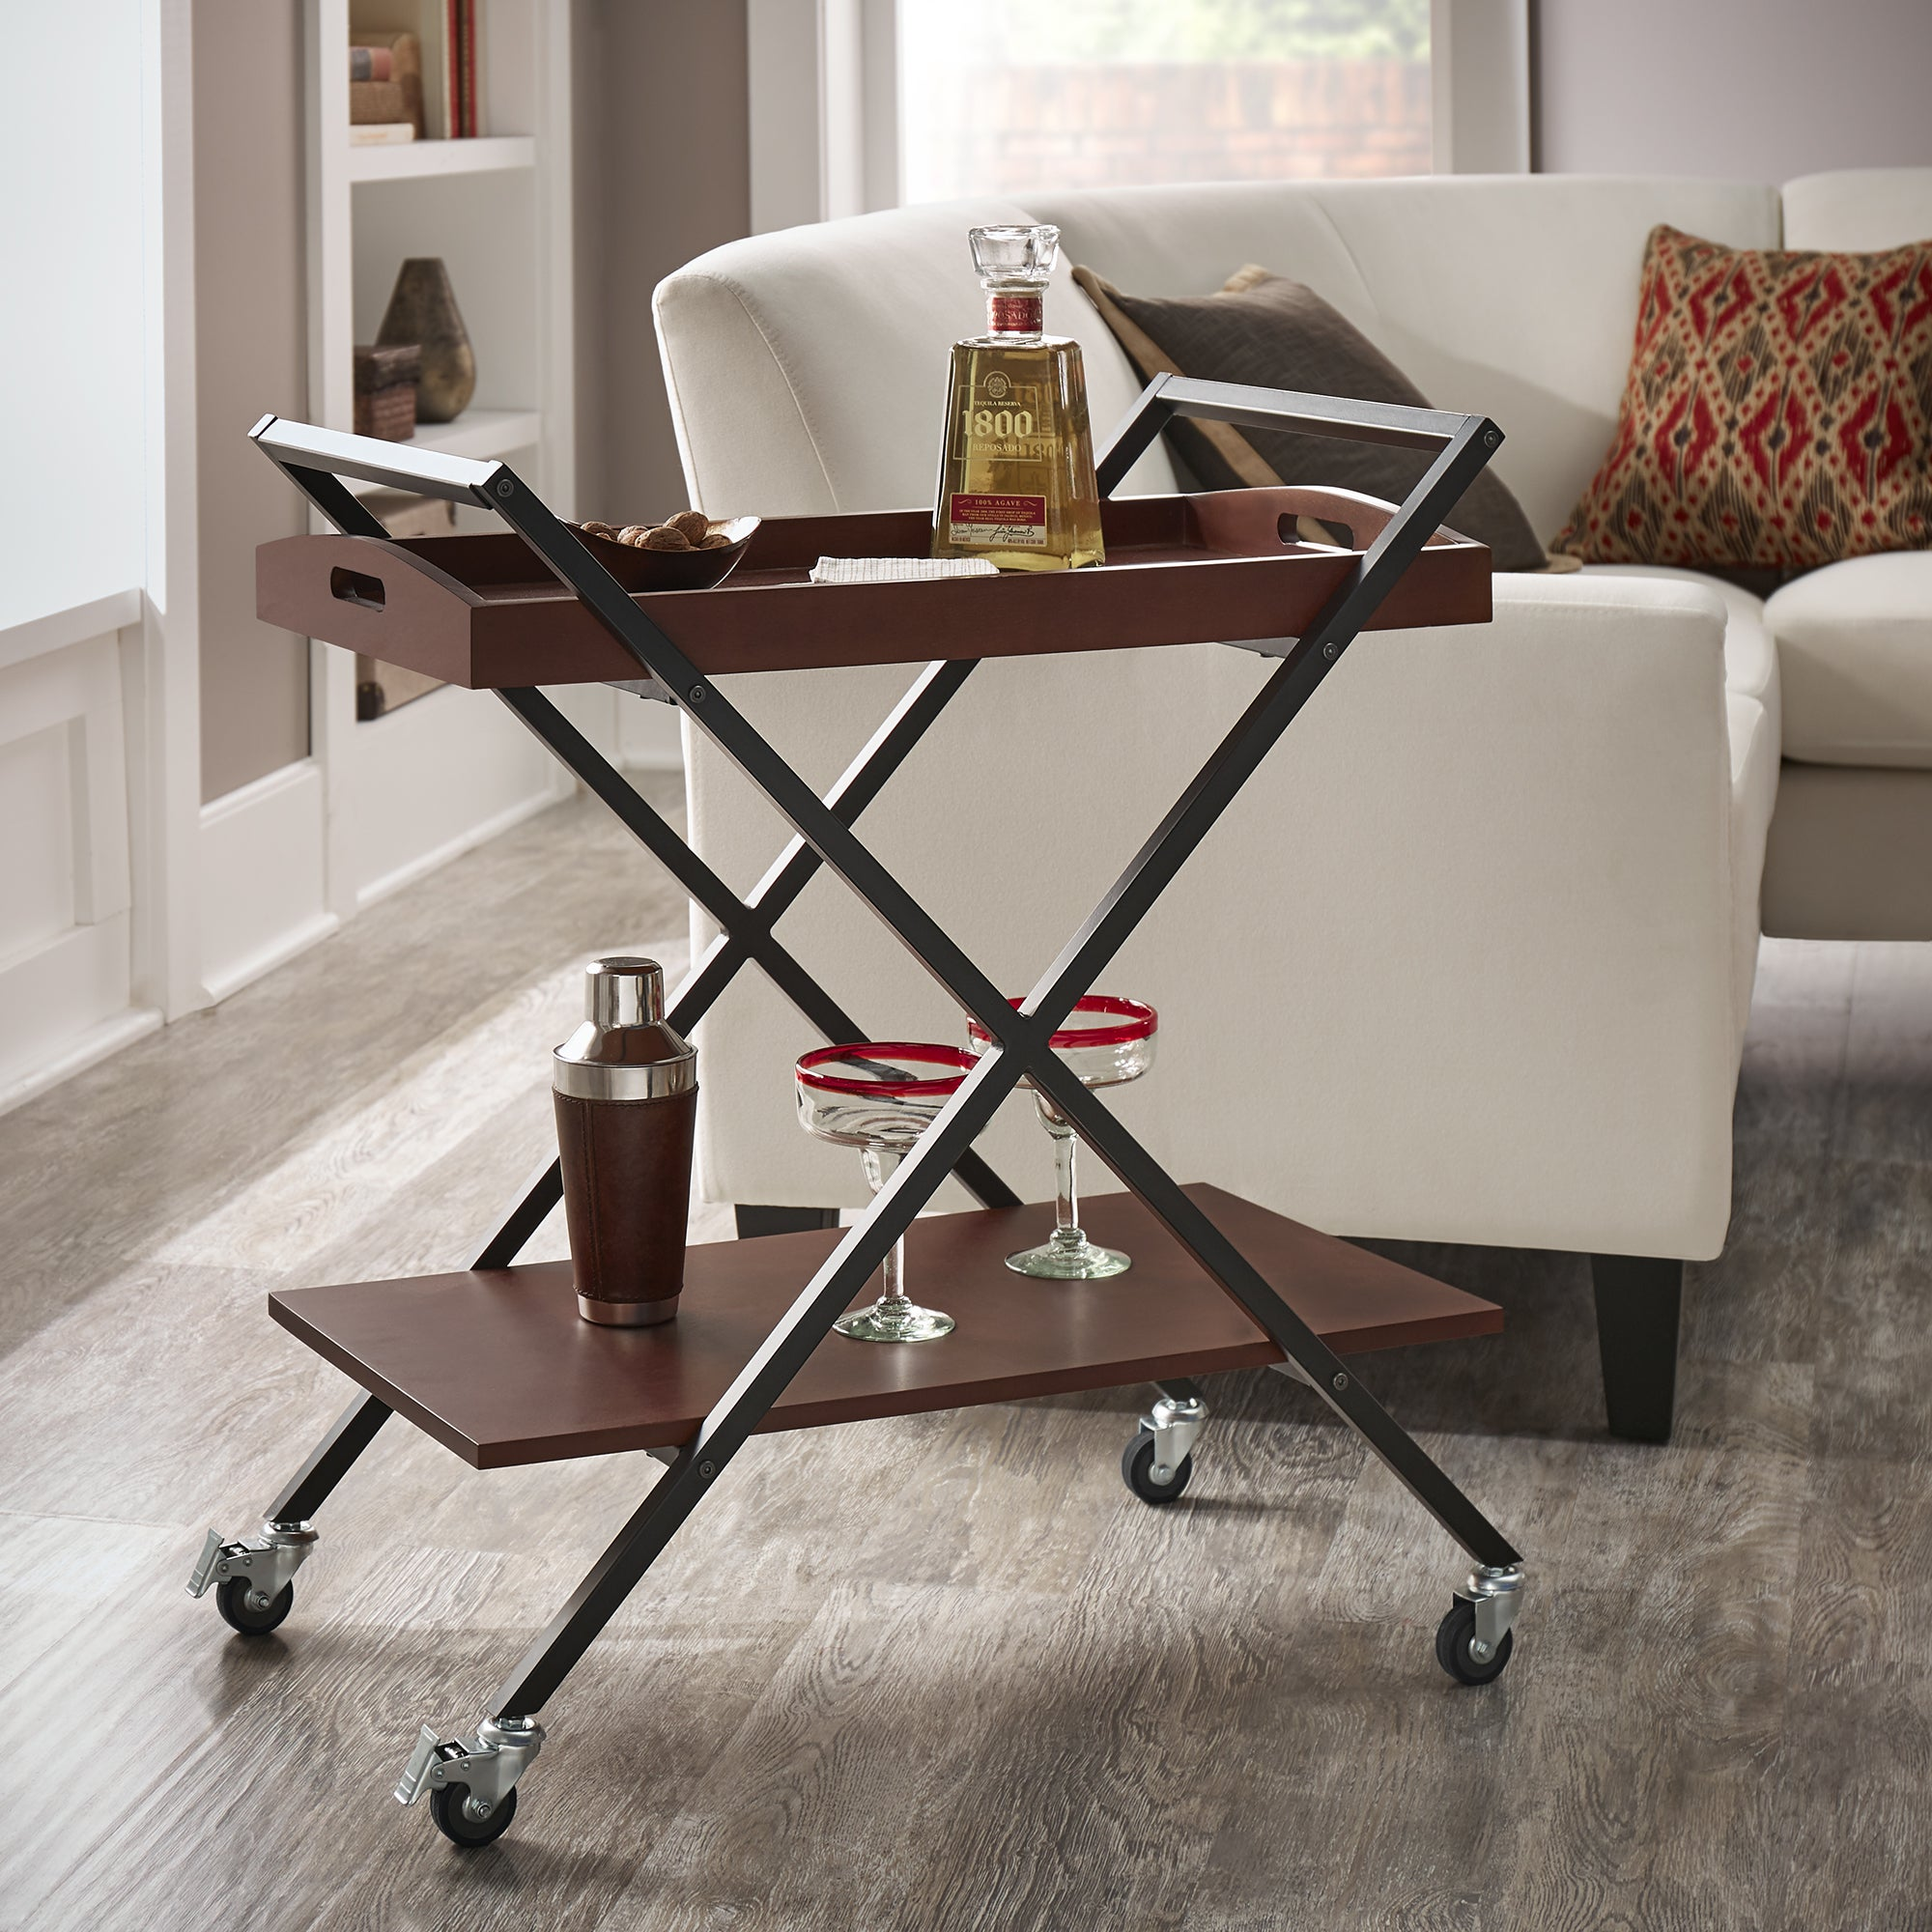 Kash black finish metal and wood bar cart by inspire q classic